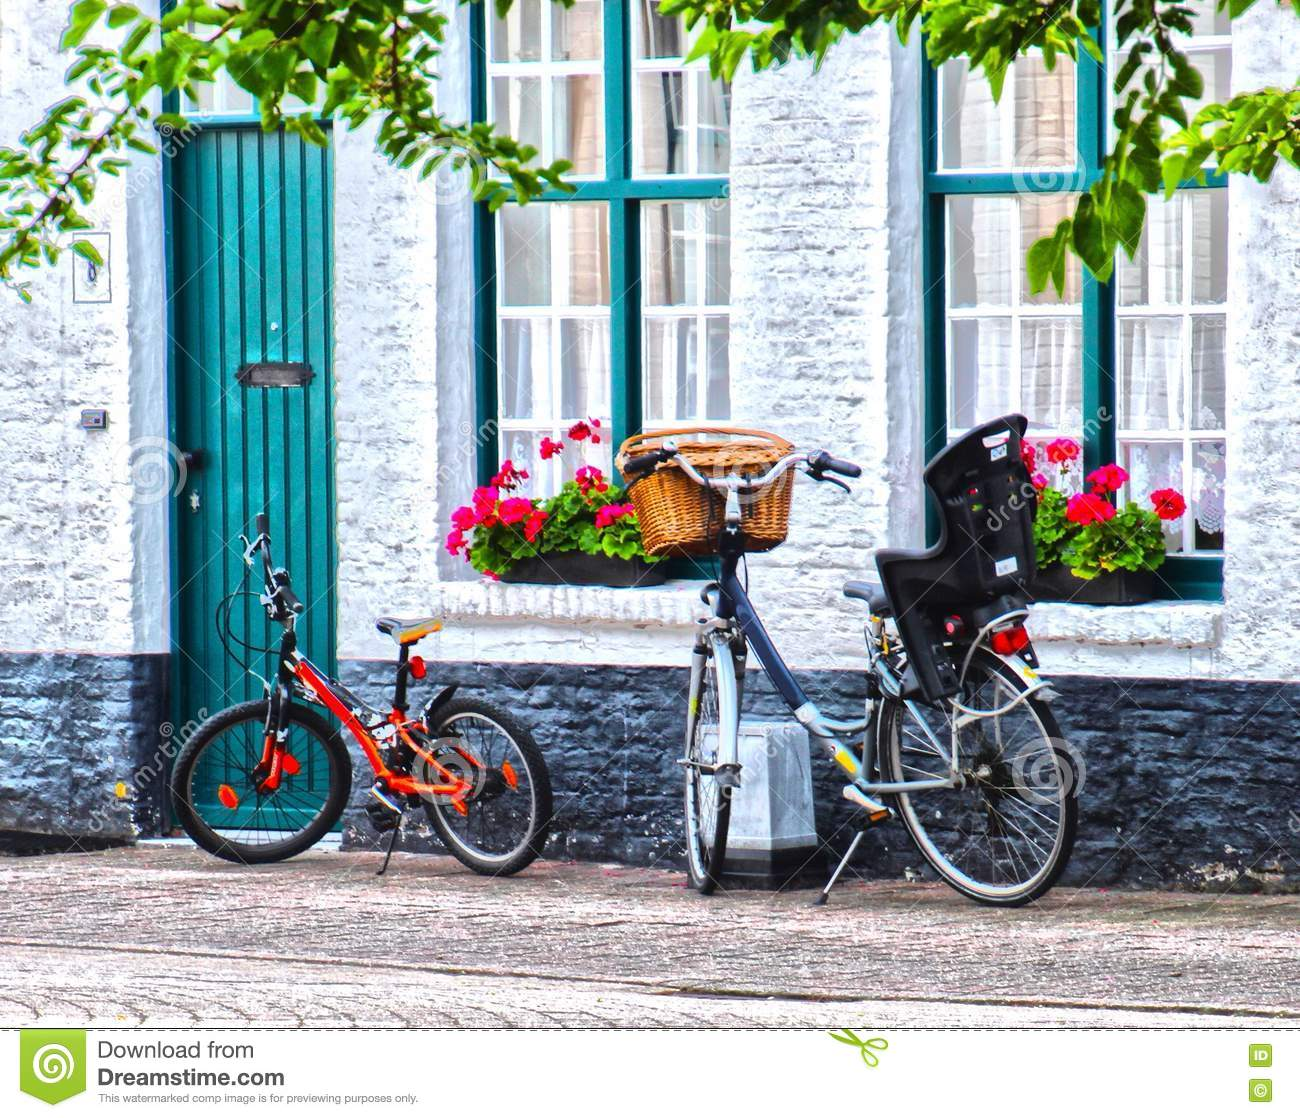 One black vintage style one red child size bicycle in front of the entrance of a white house on the street windows are green color